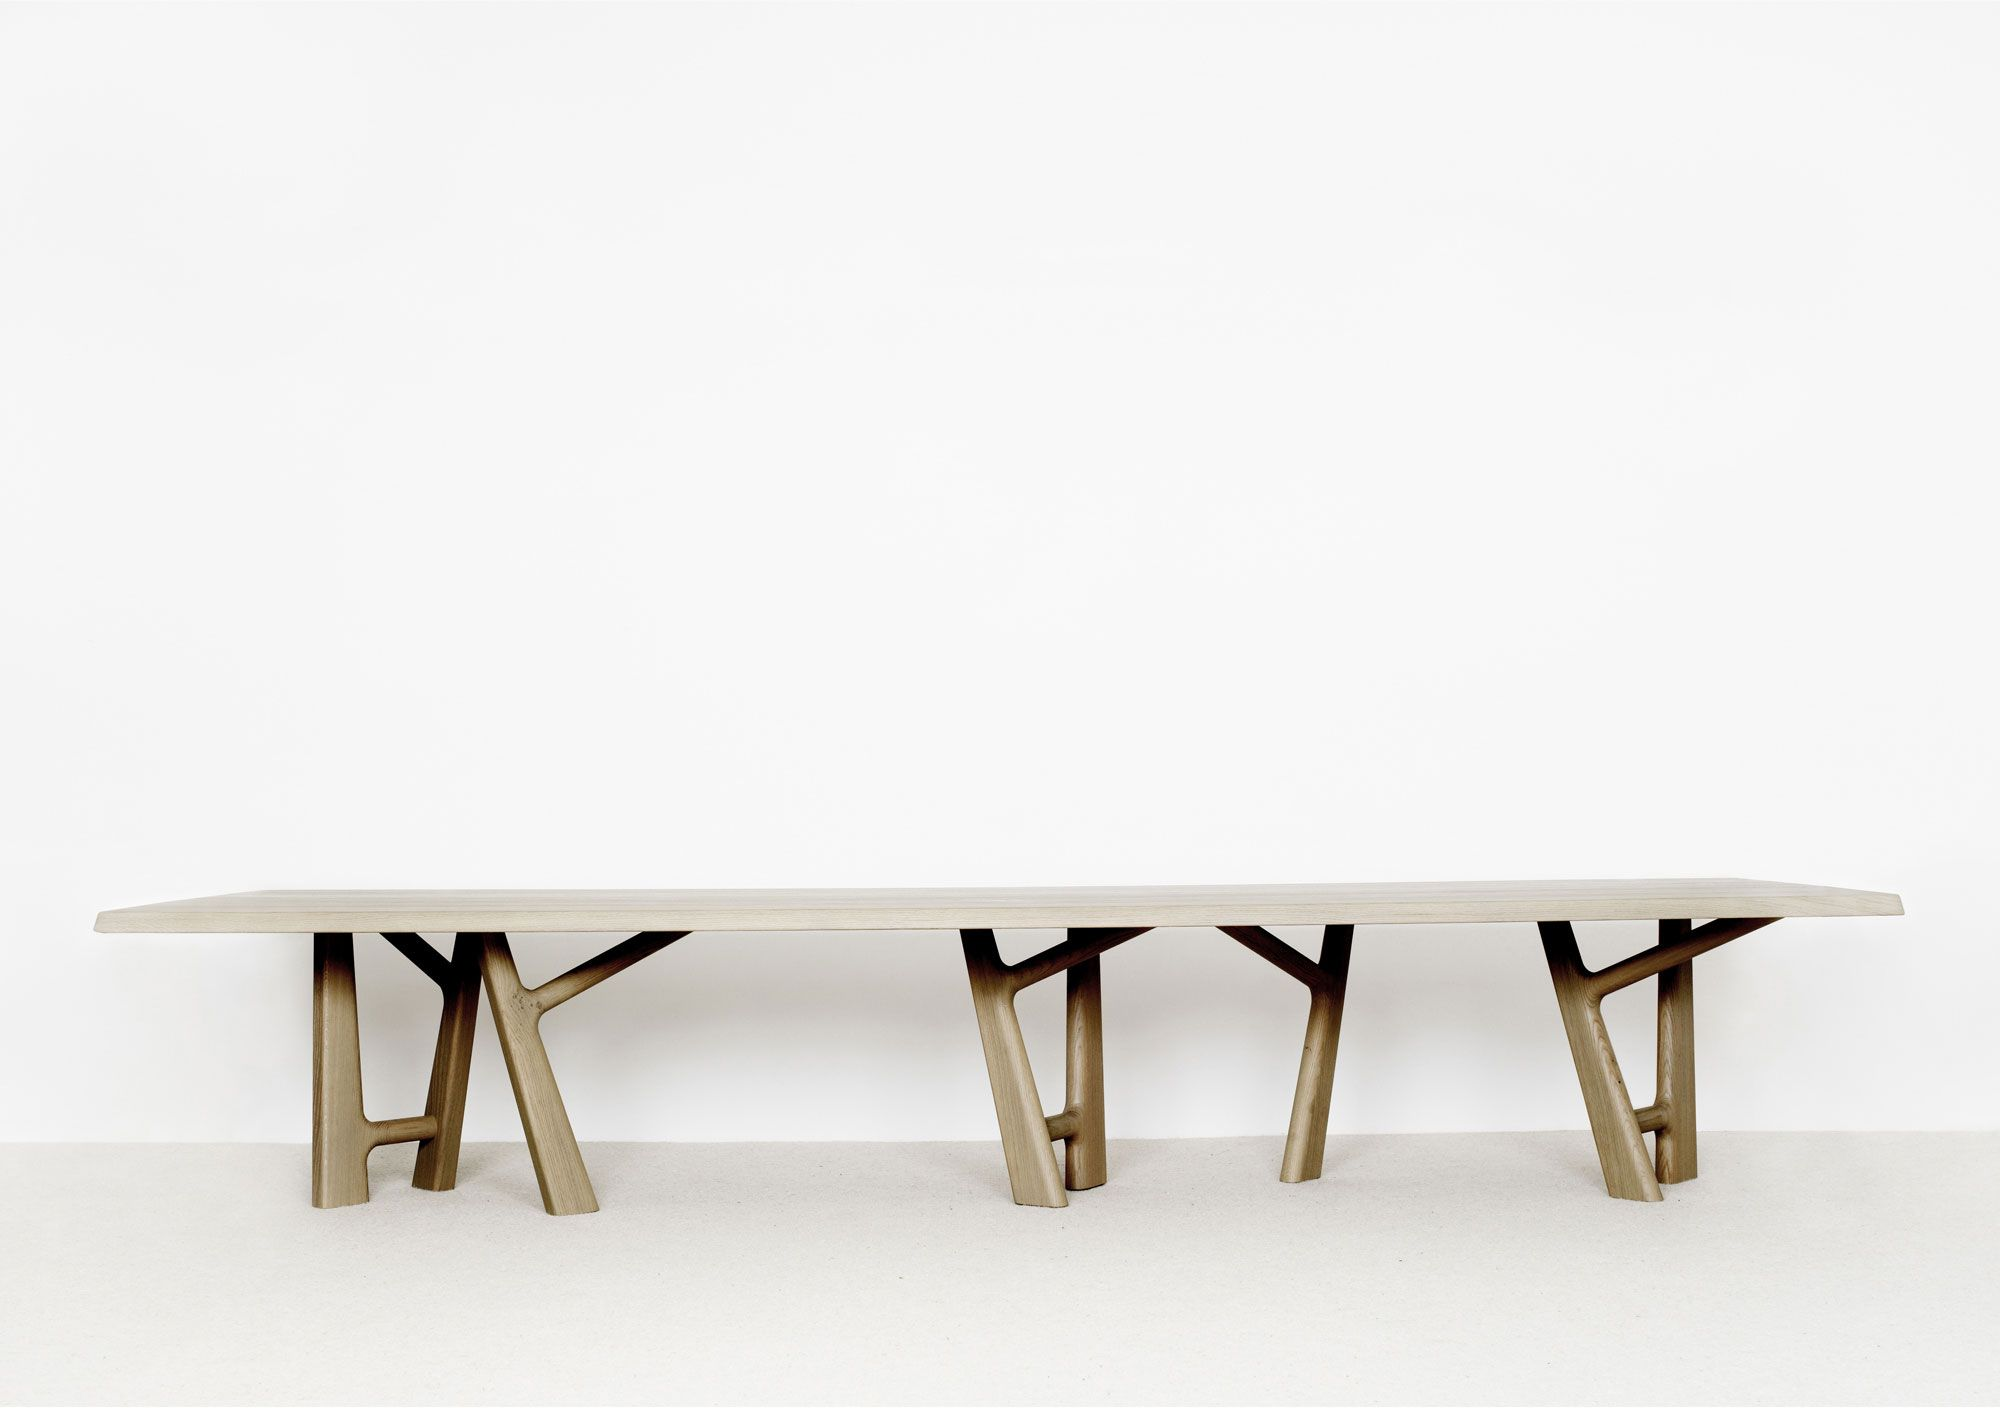 Corian & Walnut Dining Table by S¸ren Nissen and Ebbe Gehl Naver